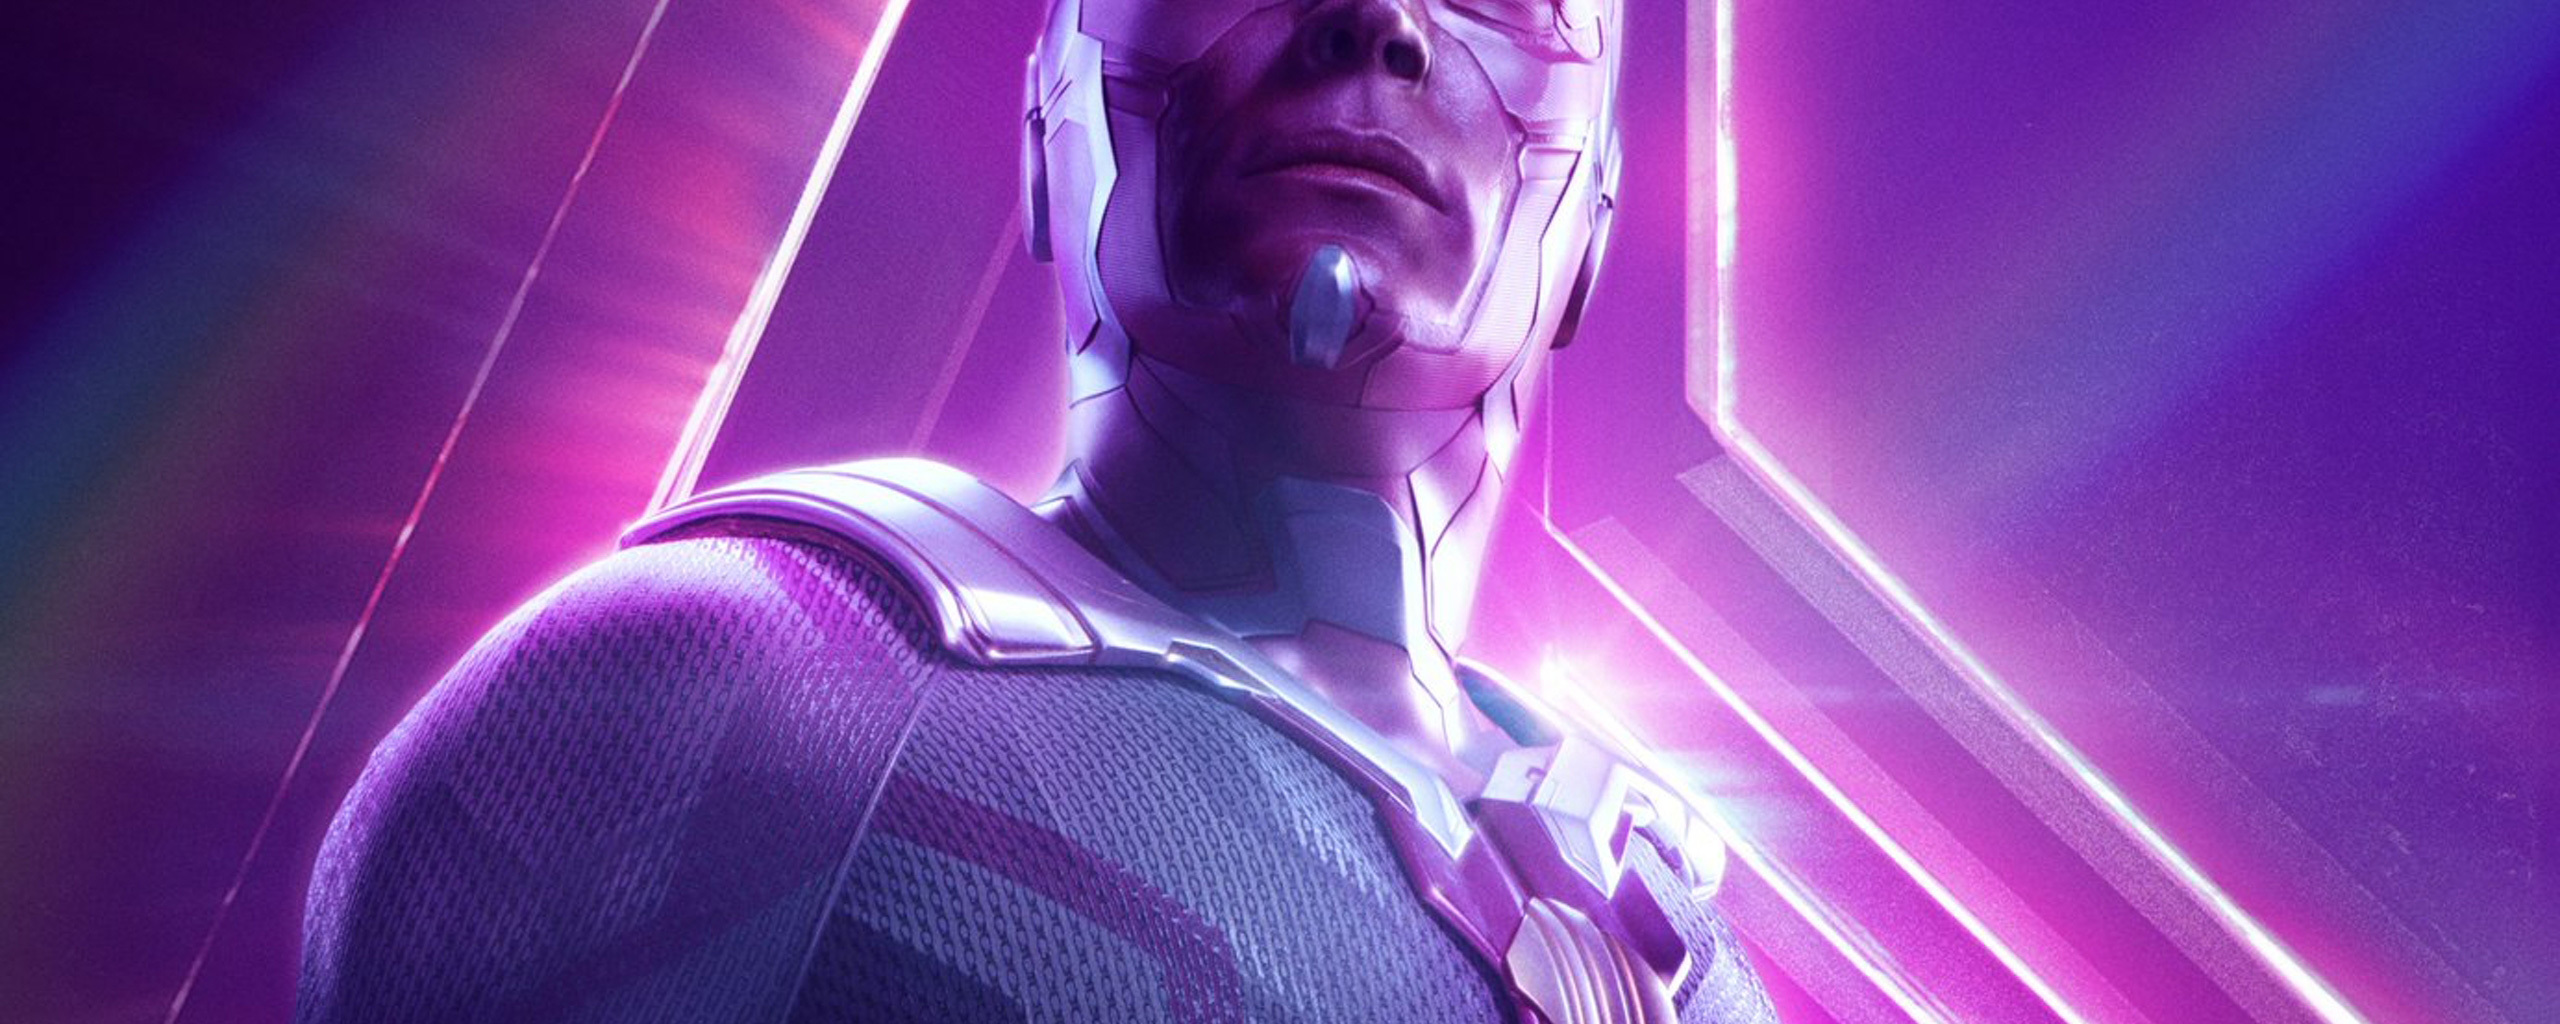 vision-in-avengers-infinity-war-new-poster-zq.jpg